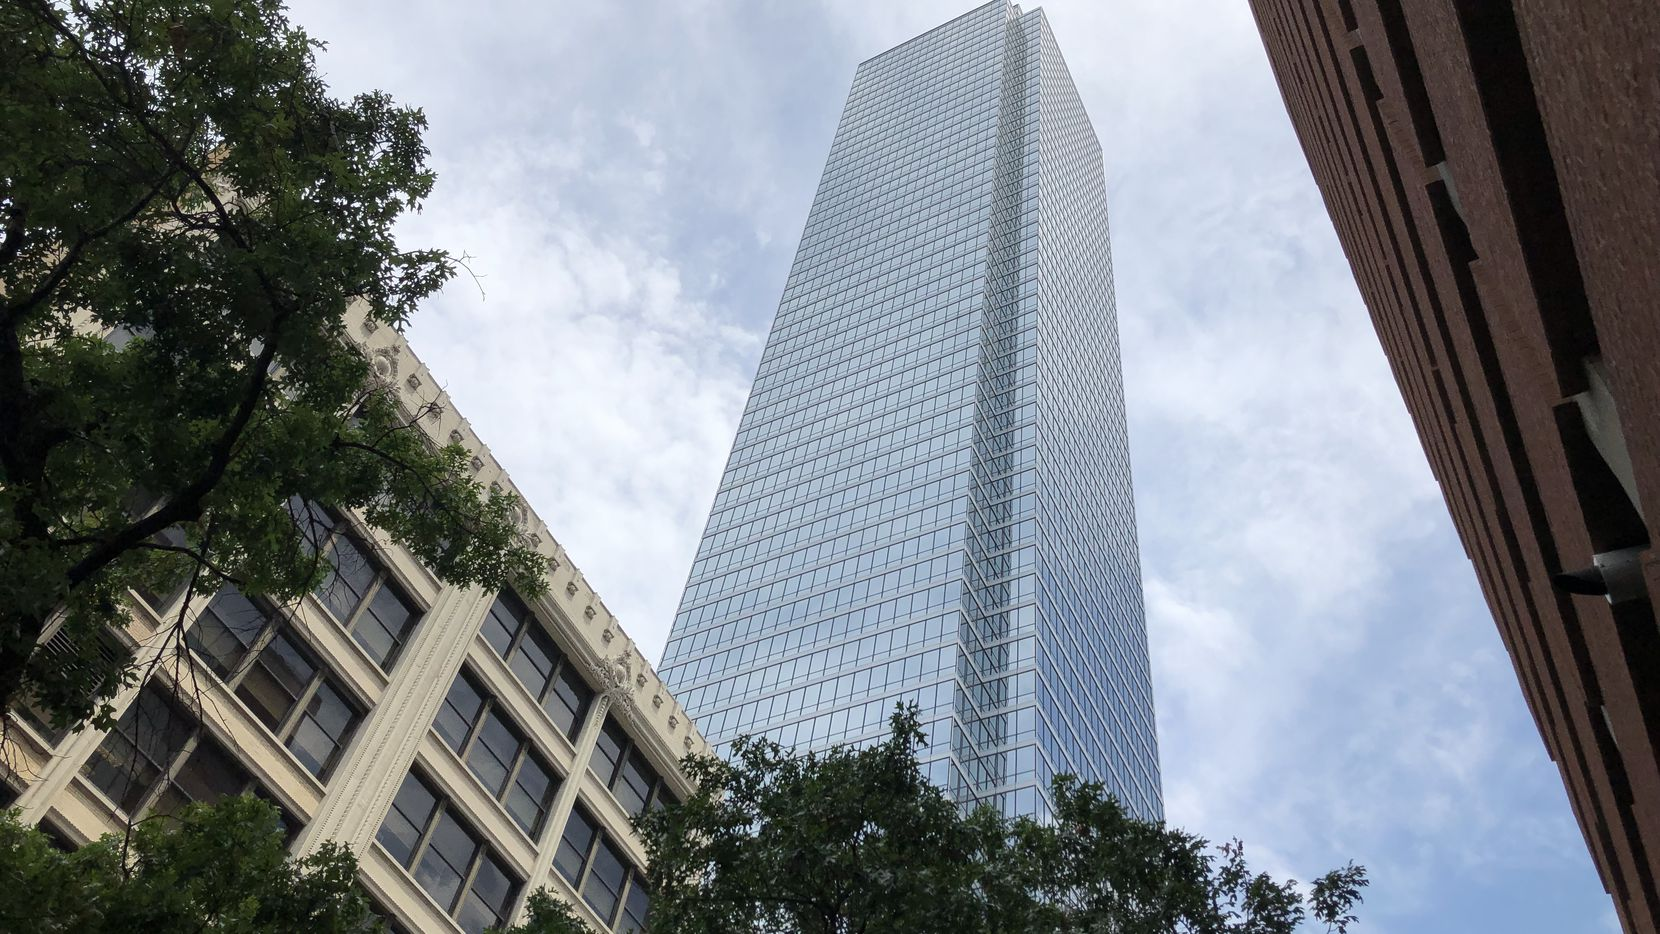 Law firm Zelle LLP is expanding and remodeling its office in Bank of America Plaza.